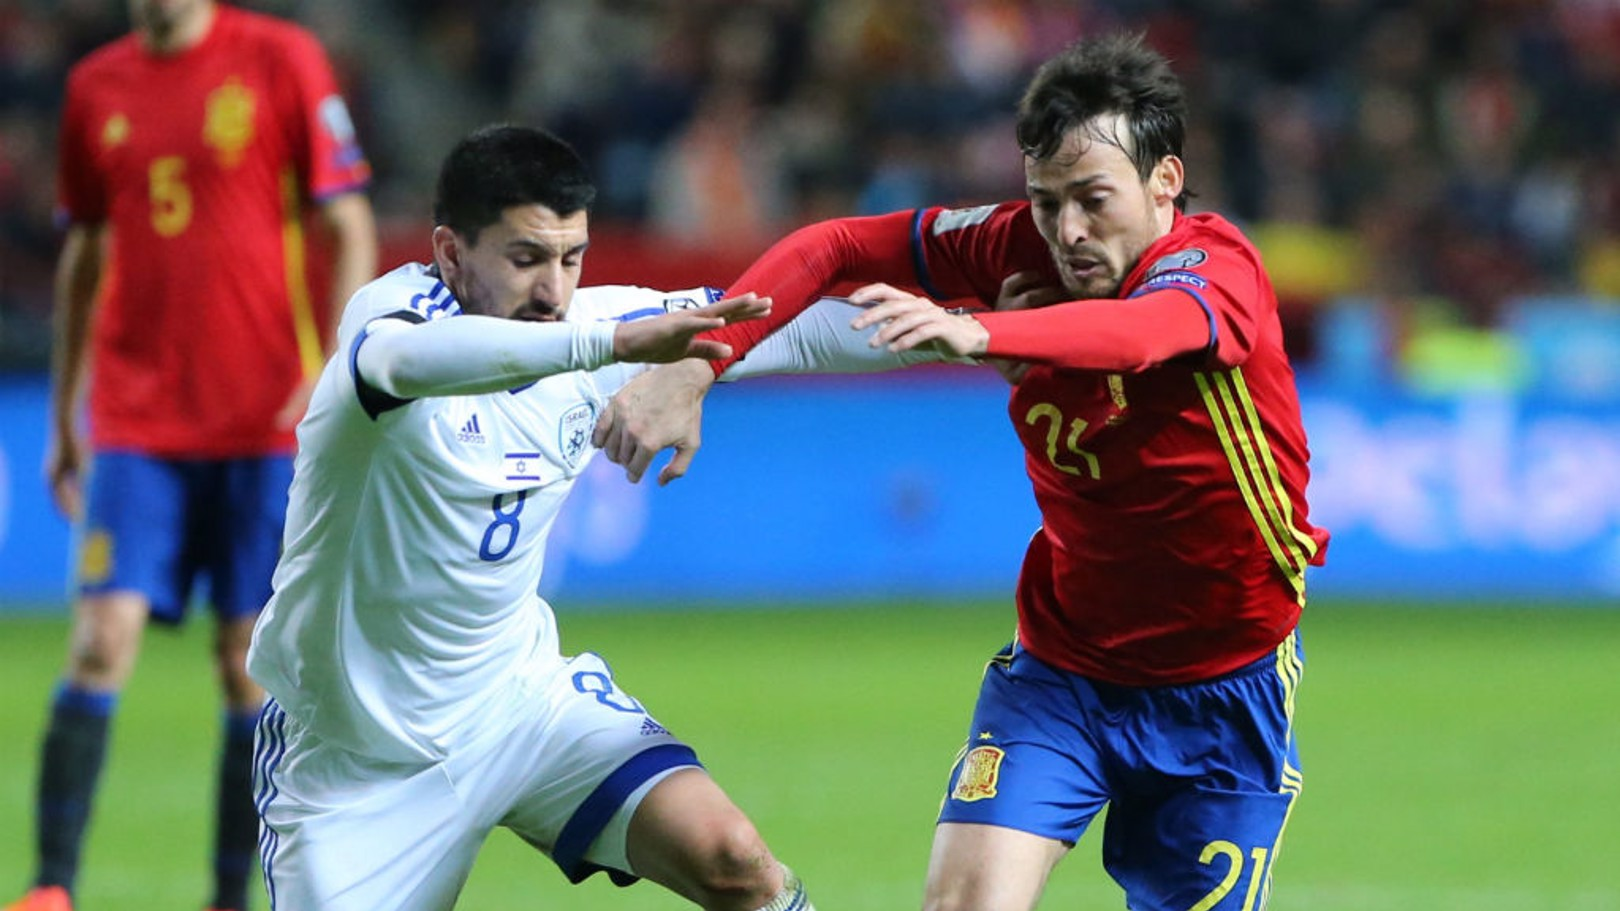 SILVA: The Spaniard is one of Manchester City's international contingent